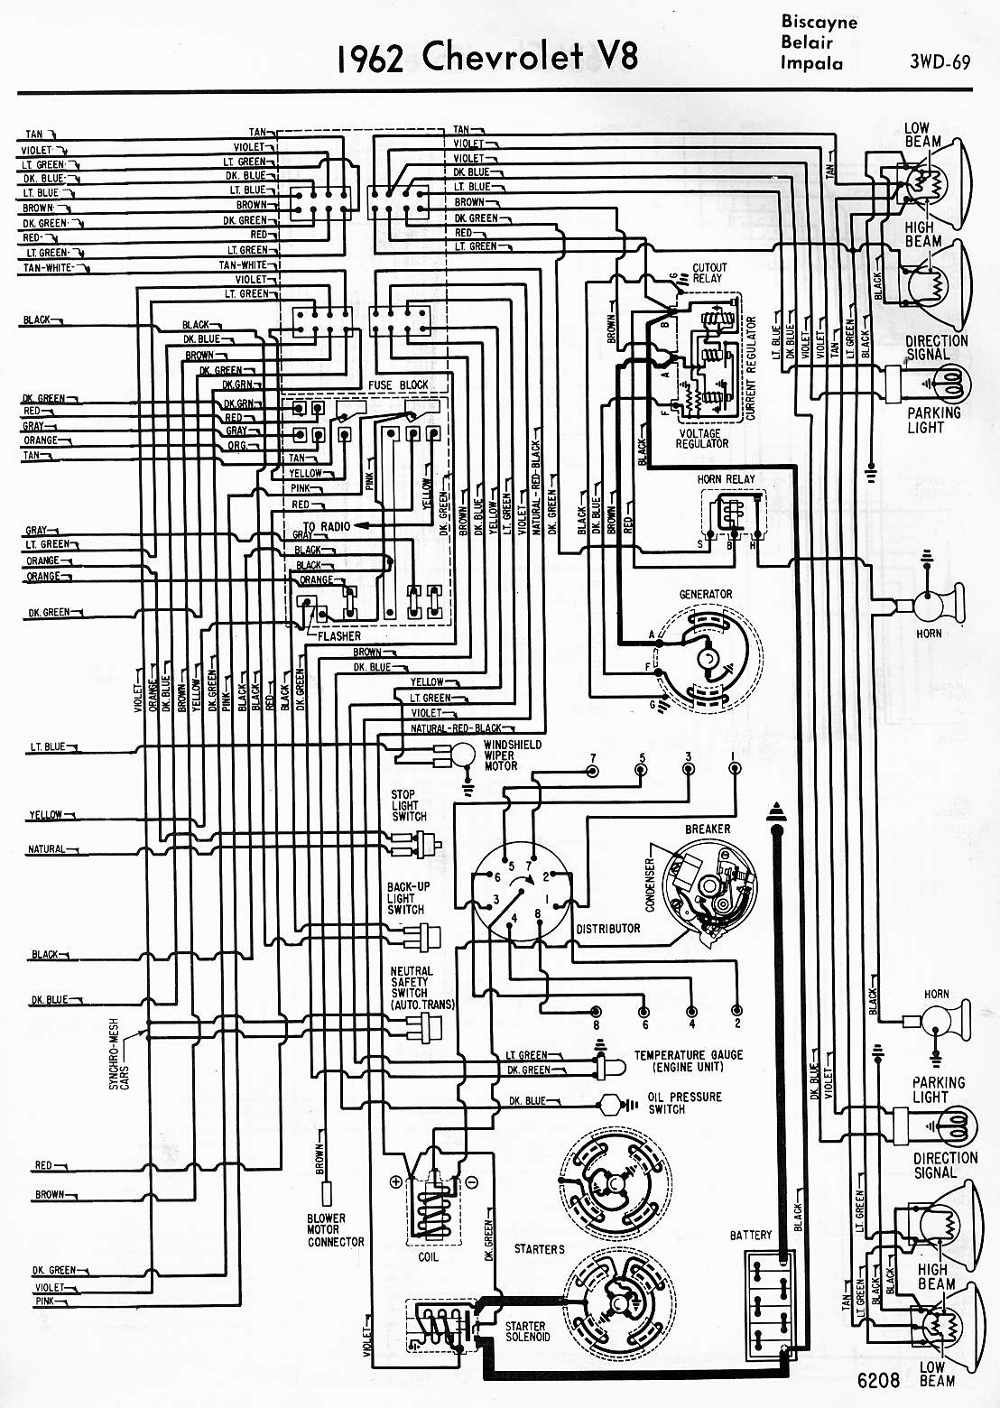 20 References Of Free Ford Wiring Diagrams Design Https Bacamajalah Com 20 References Of Free Ford Wir Electrical Wiring Diagram Diagram Electrical Diagram